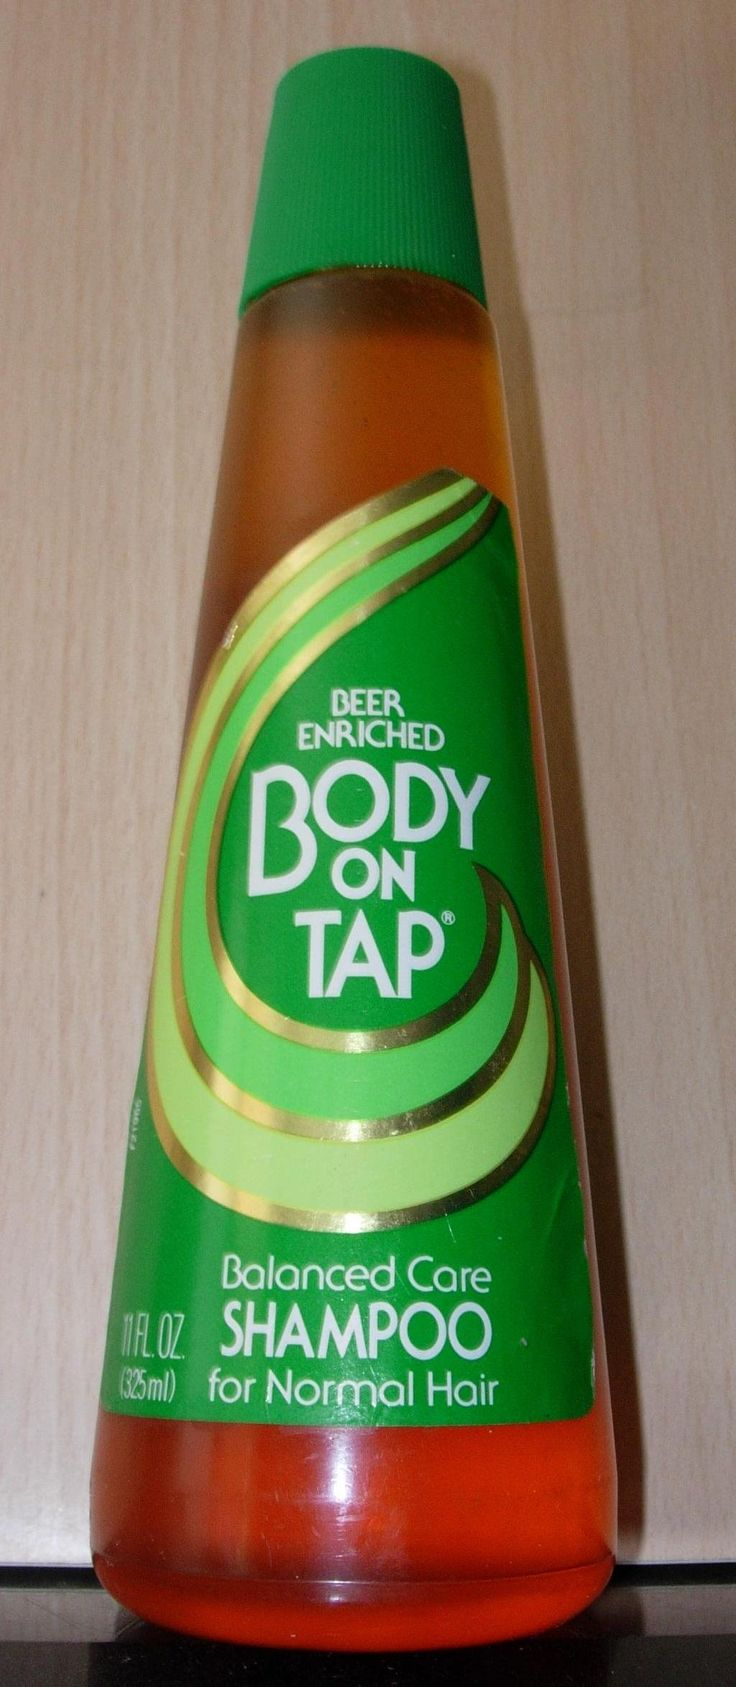 products from the 1970s | The 1970s were a strange time for marketing products. Take Body On Tap ...